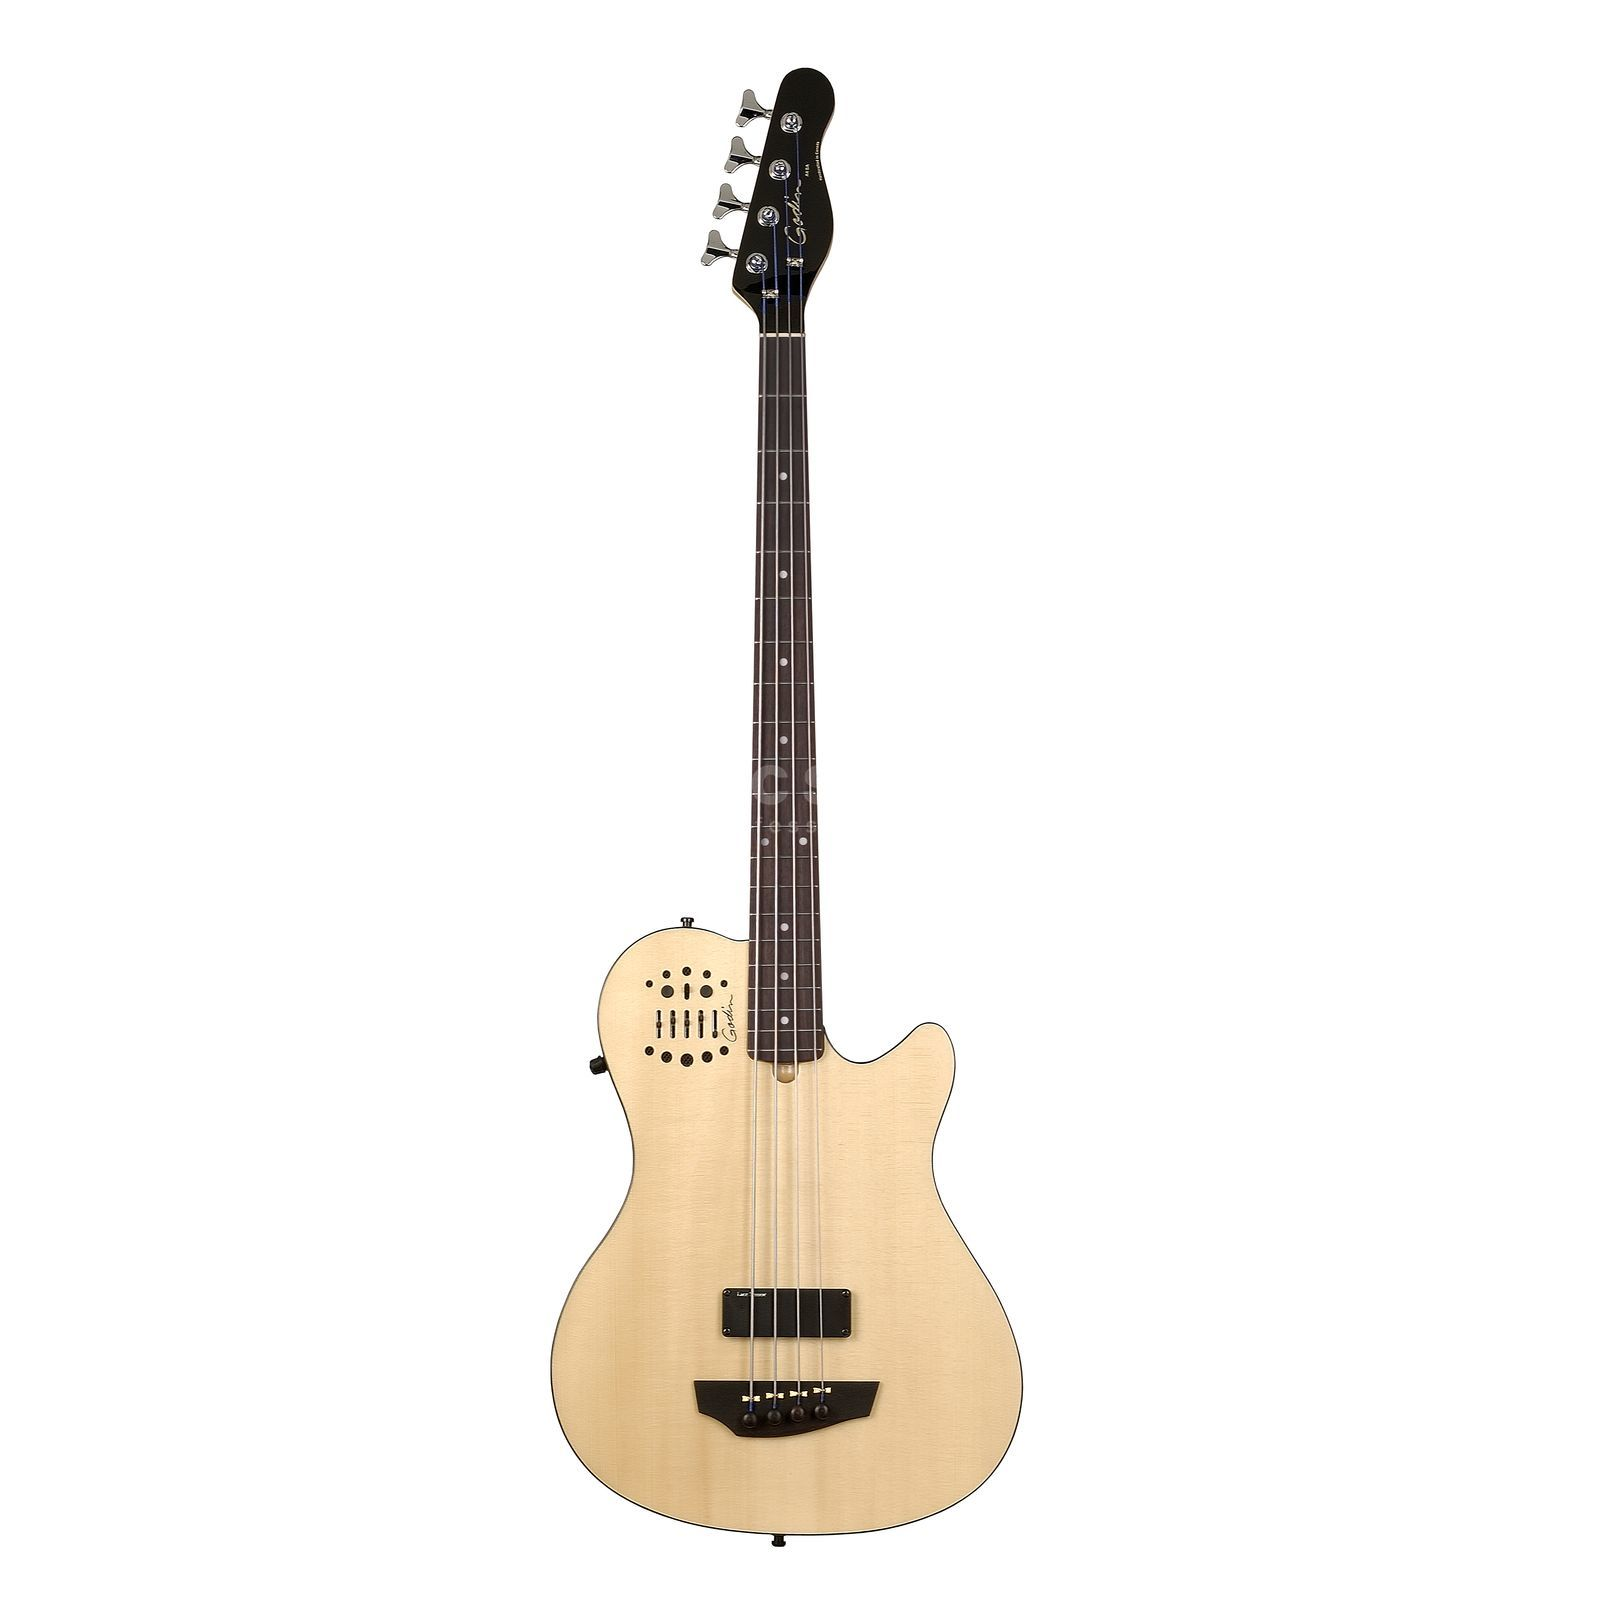 Godin A4 Ultra SA Bass Guitar    Product Image